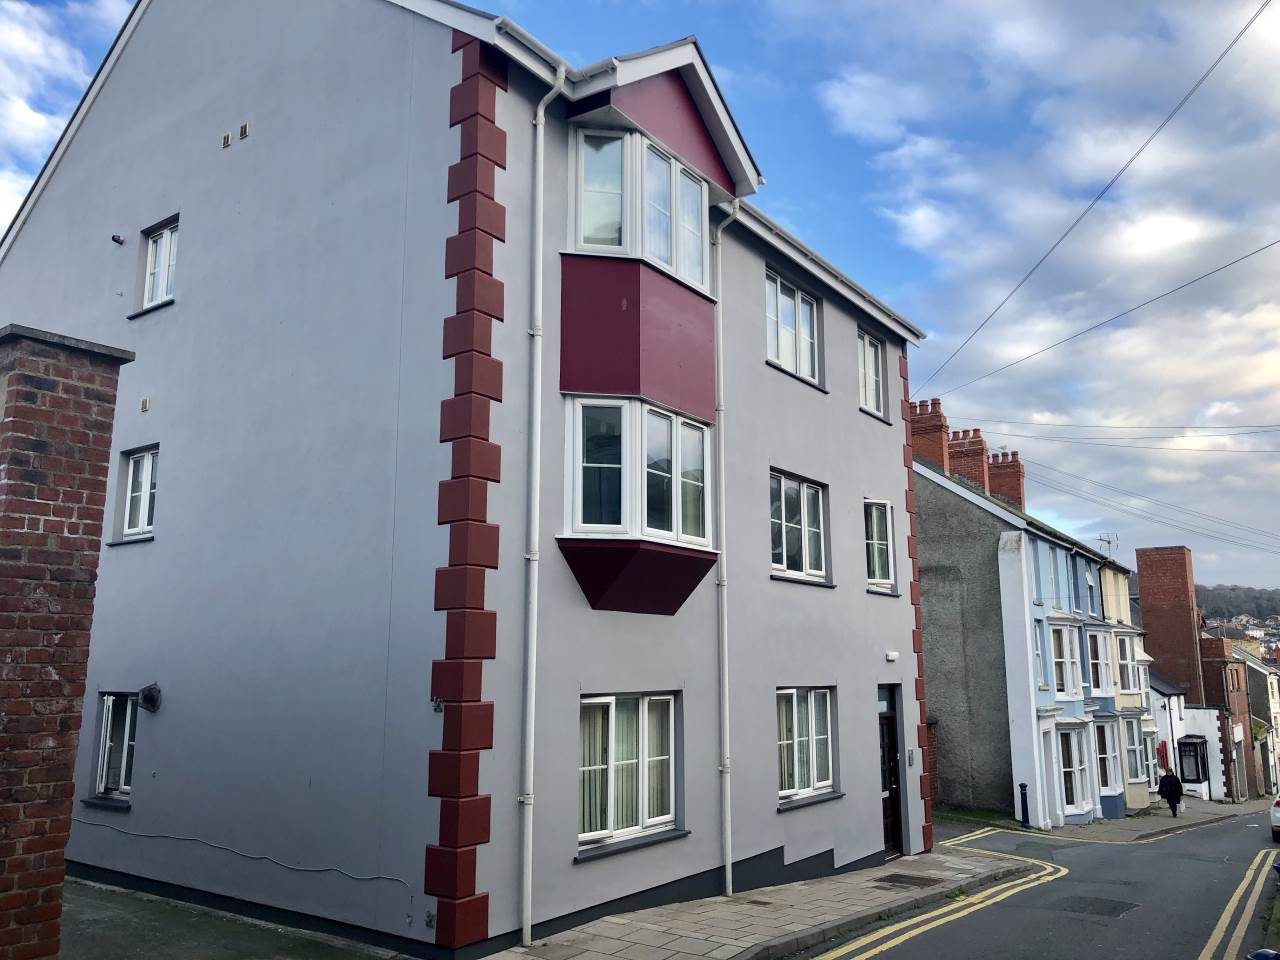 1 bed flat for sale in Aberstwyth, SY23